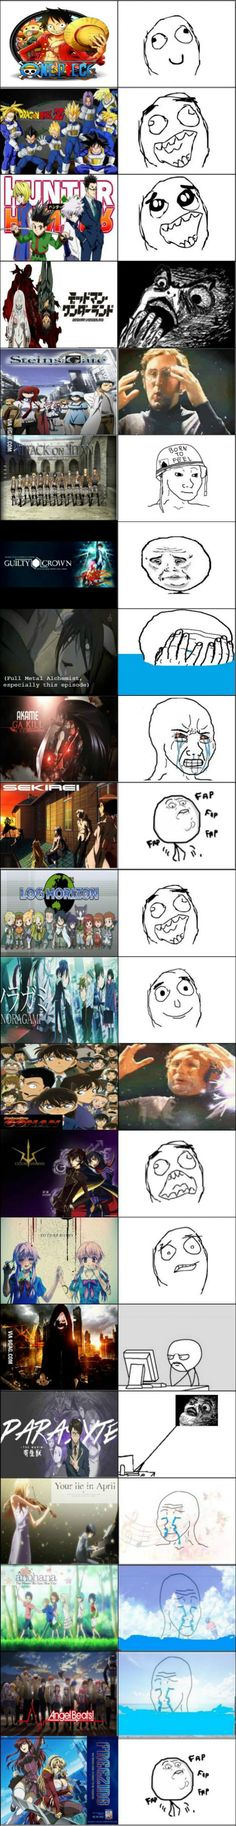 List Of Animes And Player Reactions That All Gamers Will Understand So Well! Haha reacting to different anime series. This is too true especially the FMA one!Haha reacting to different anime series. This is too true especially the FMA one! Anime Meme, Otaku Anime, Manga Anime, Anime Art, Manga Girl, Anime Girls, Anime Comics, Animes To Watch, Anime Watch